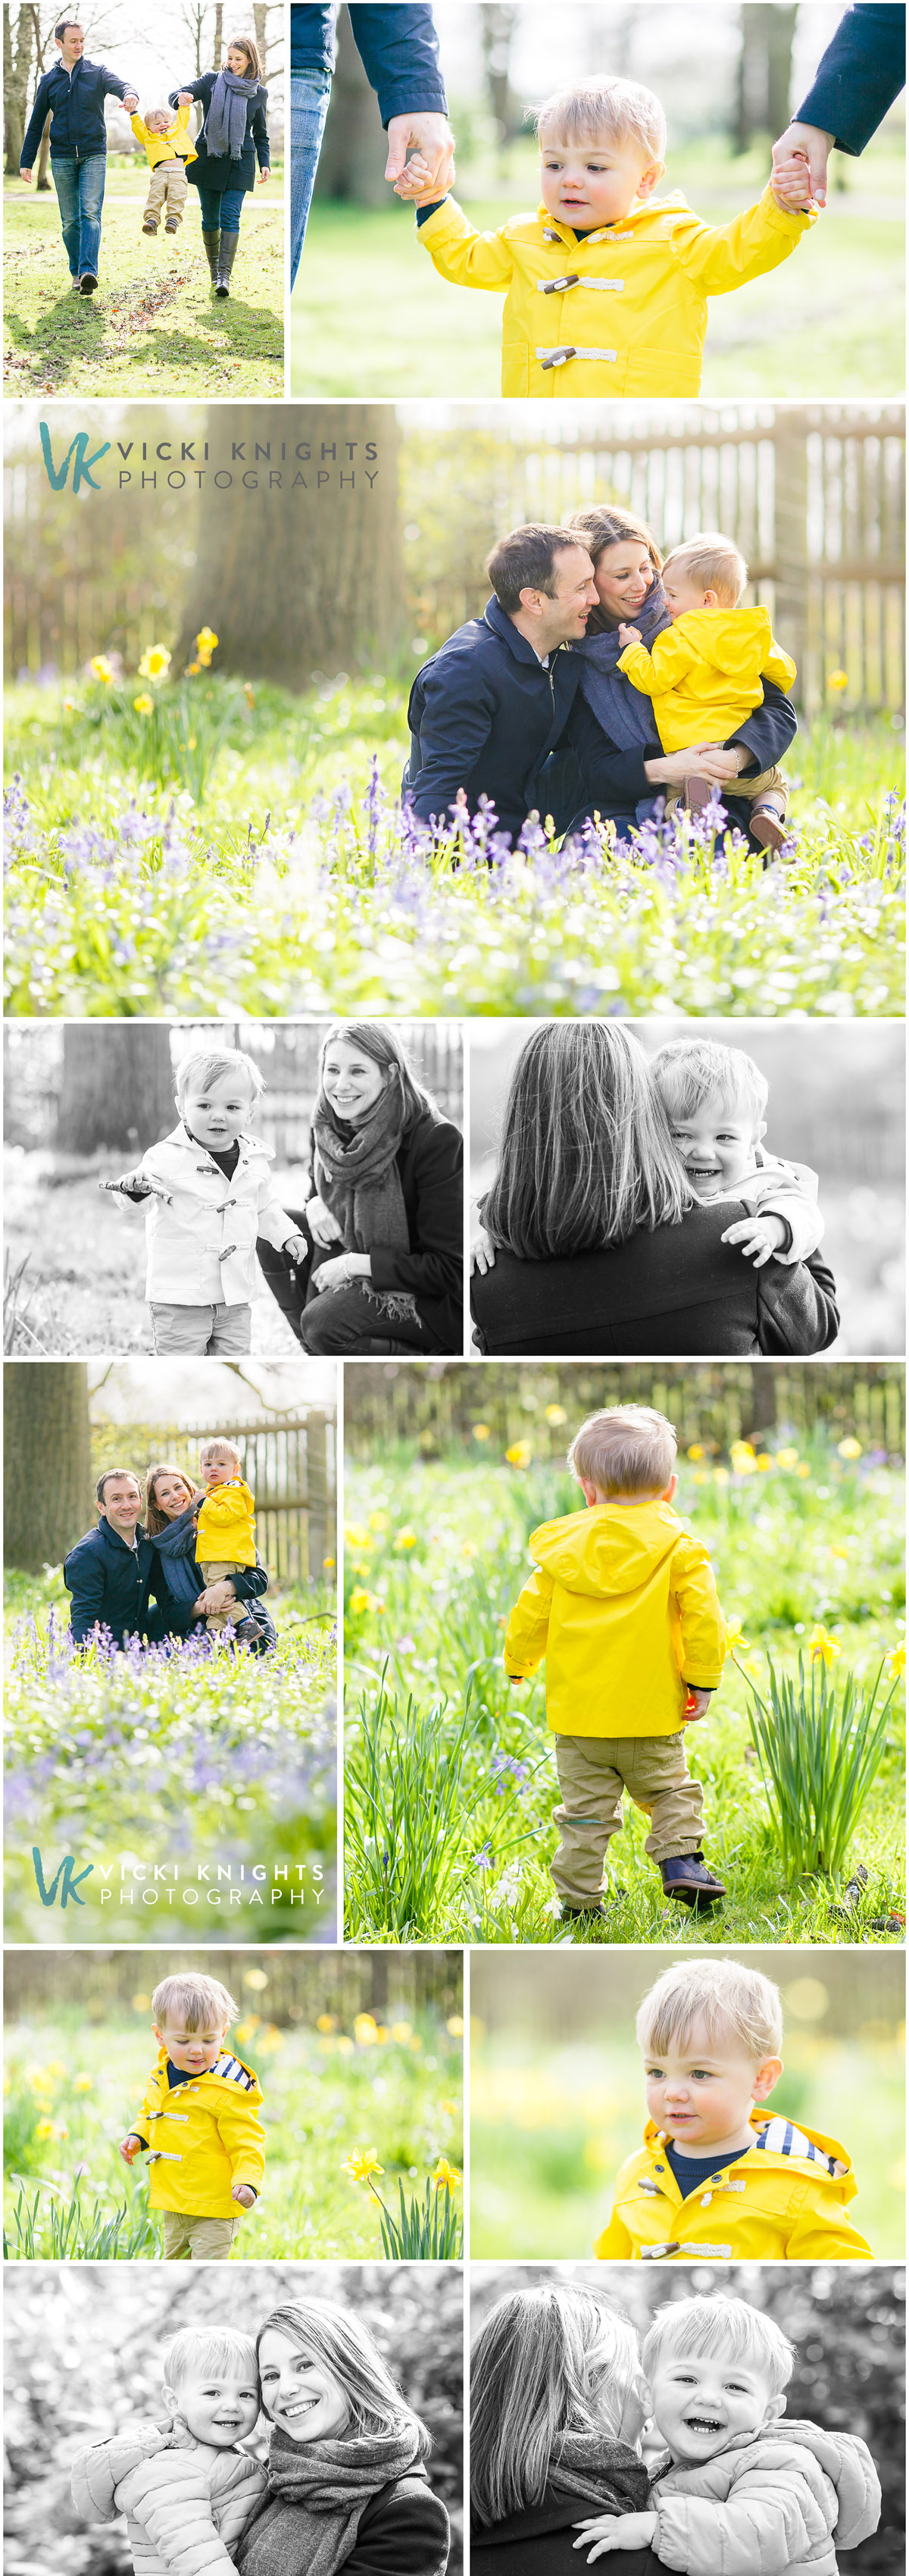 spring-family-photo-session-2